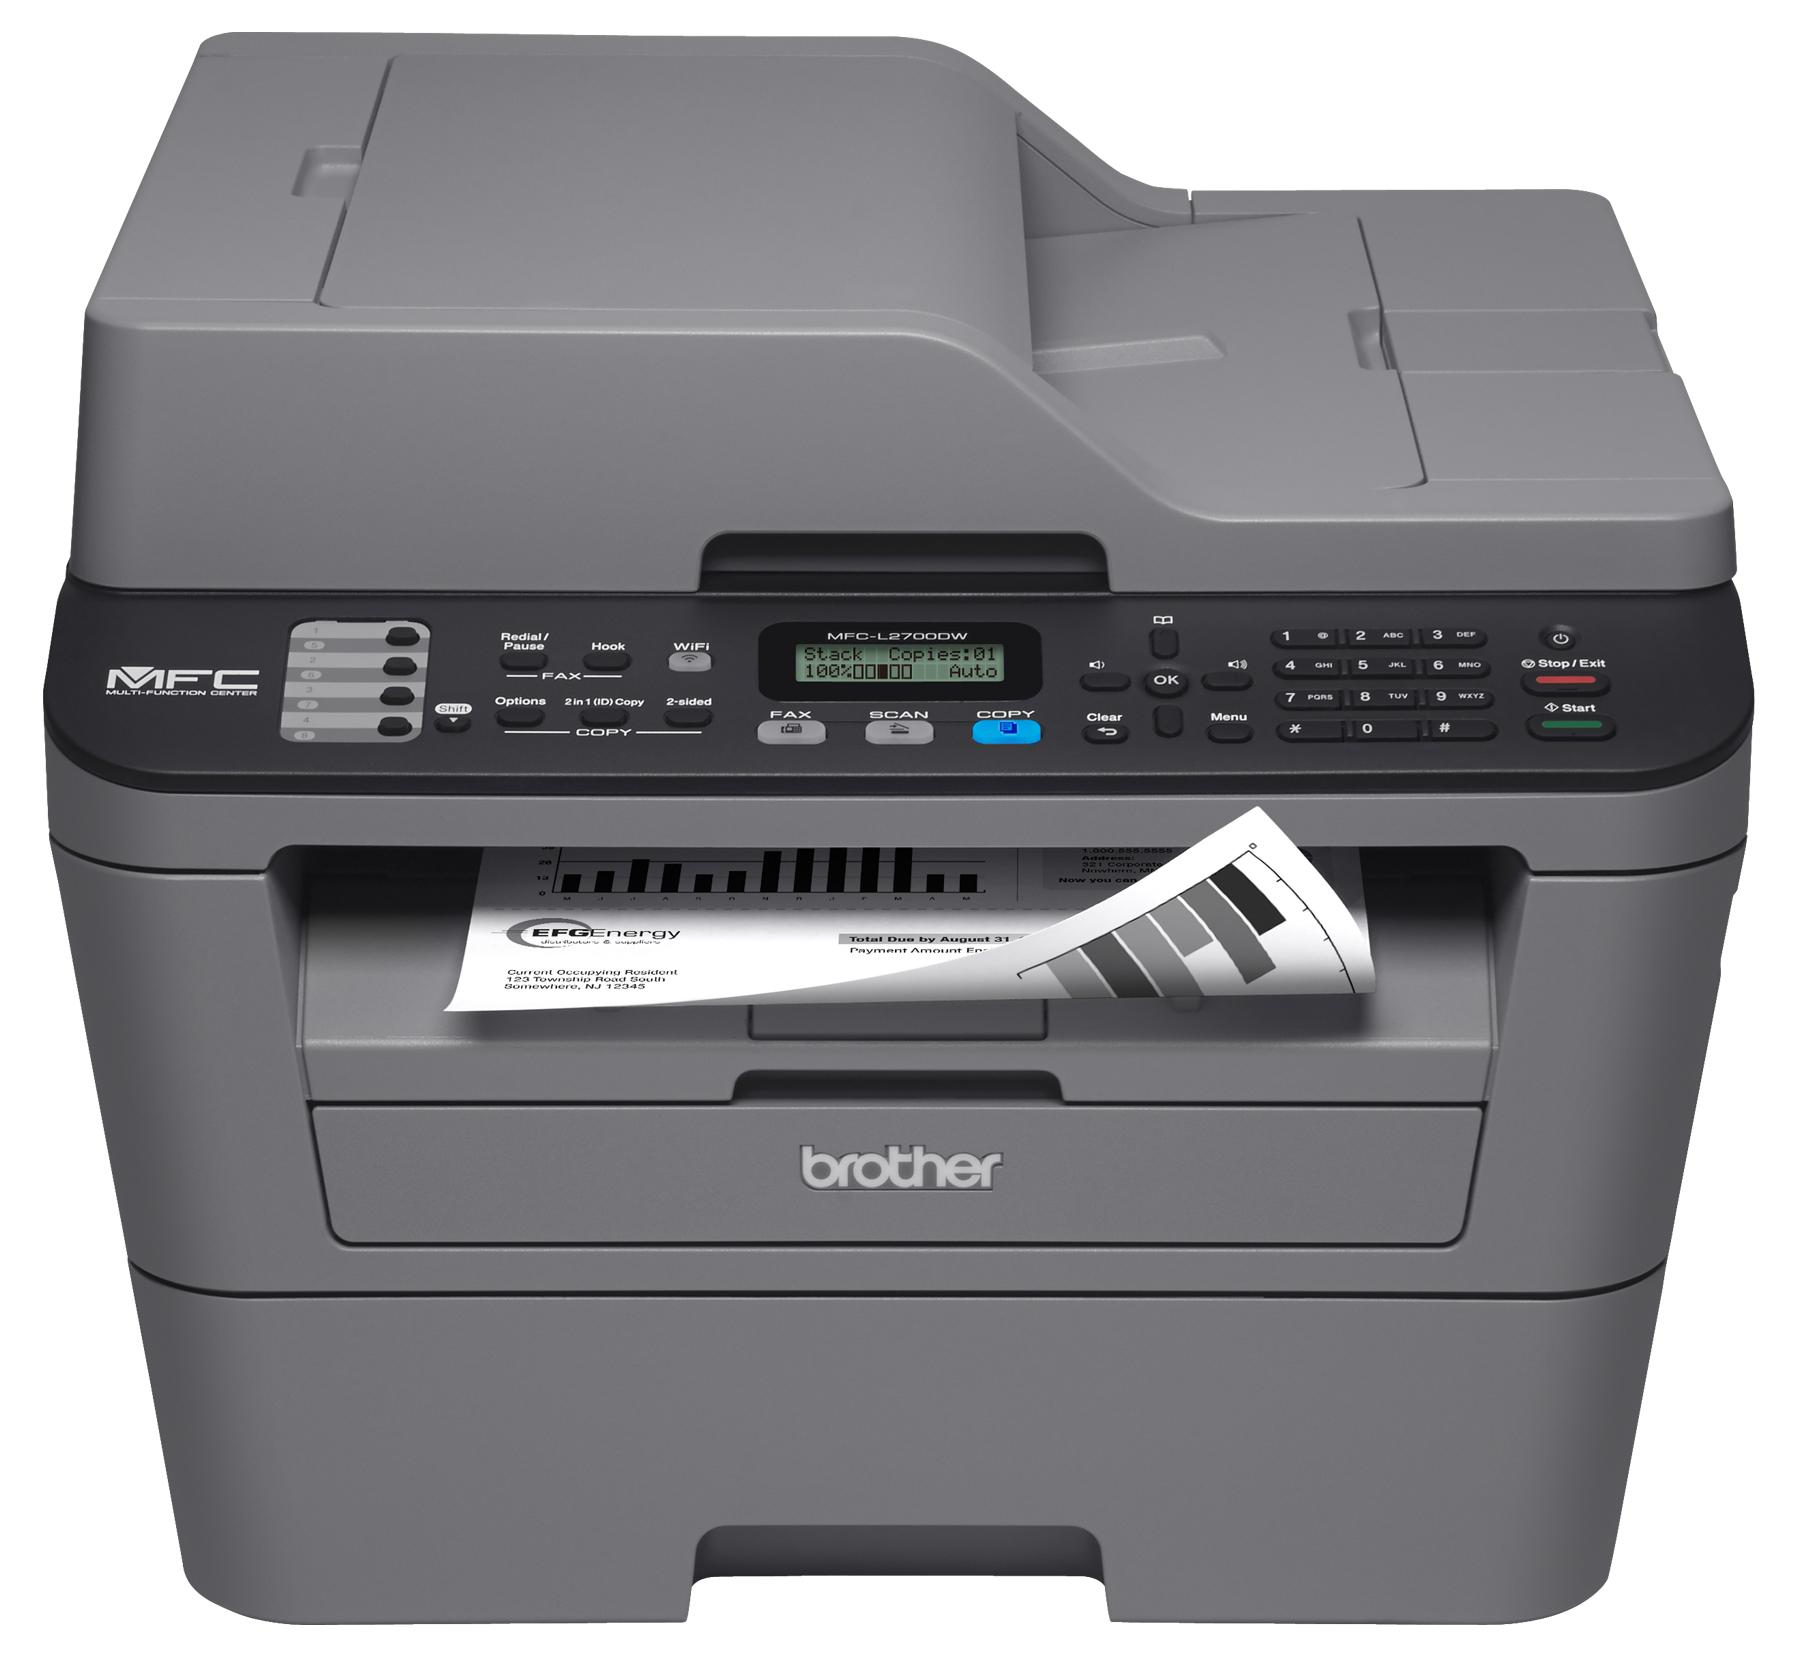 Amazon.com: Brother MFCL2700DW All-In One Laser Printer ...